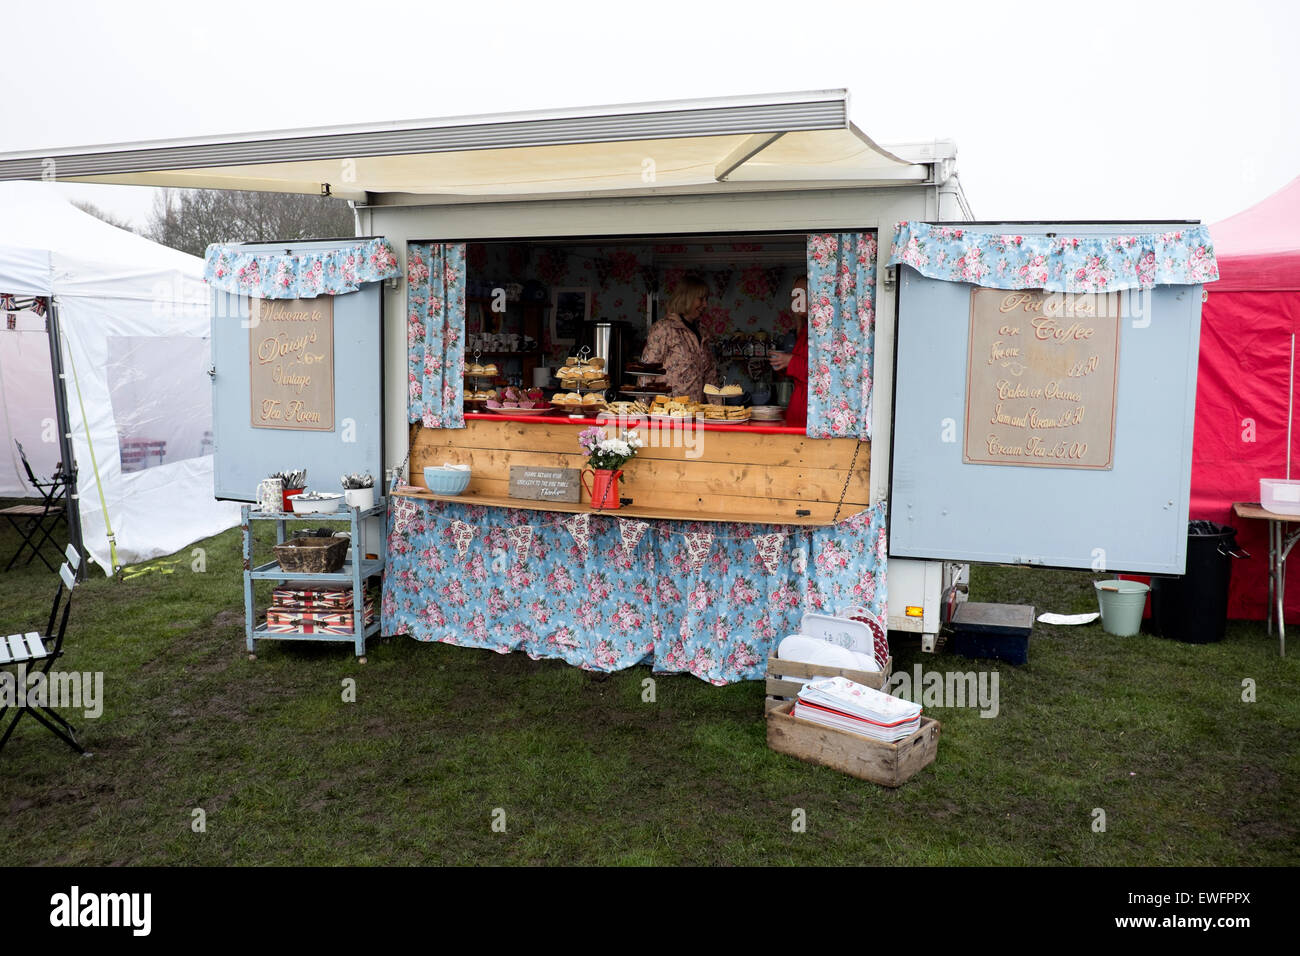 Vintage English Tea Shop Trailer Stall Kitsch Nice - Stock Image